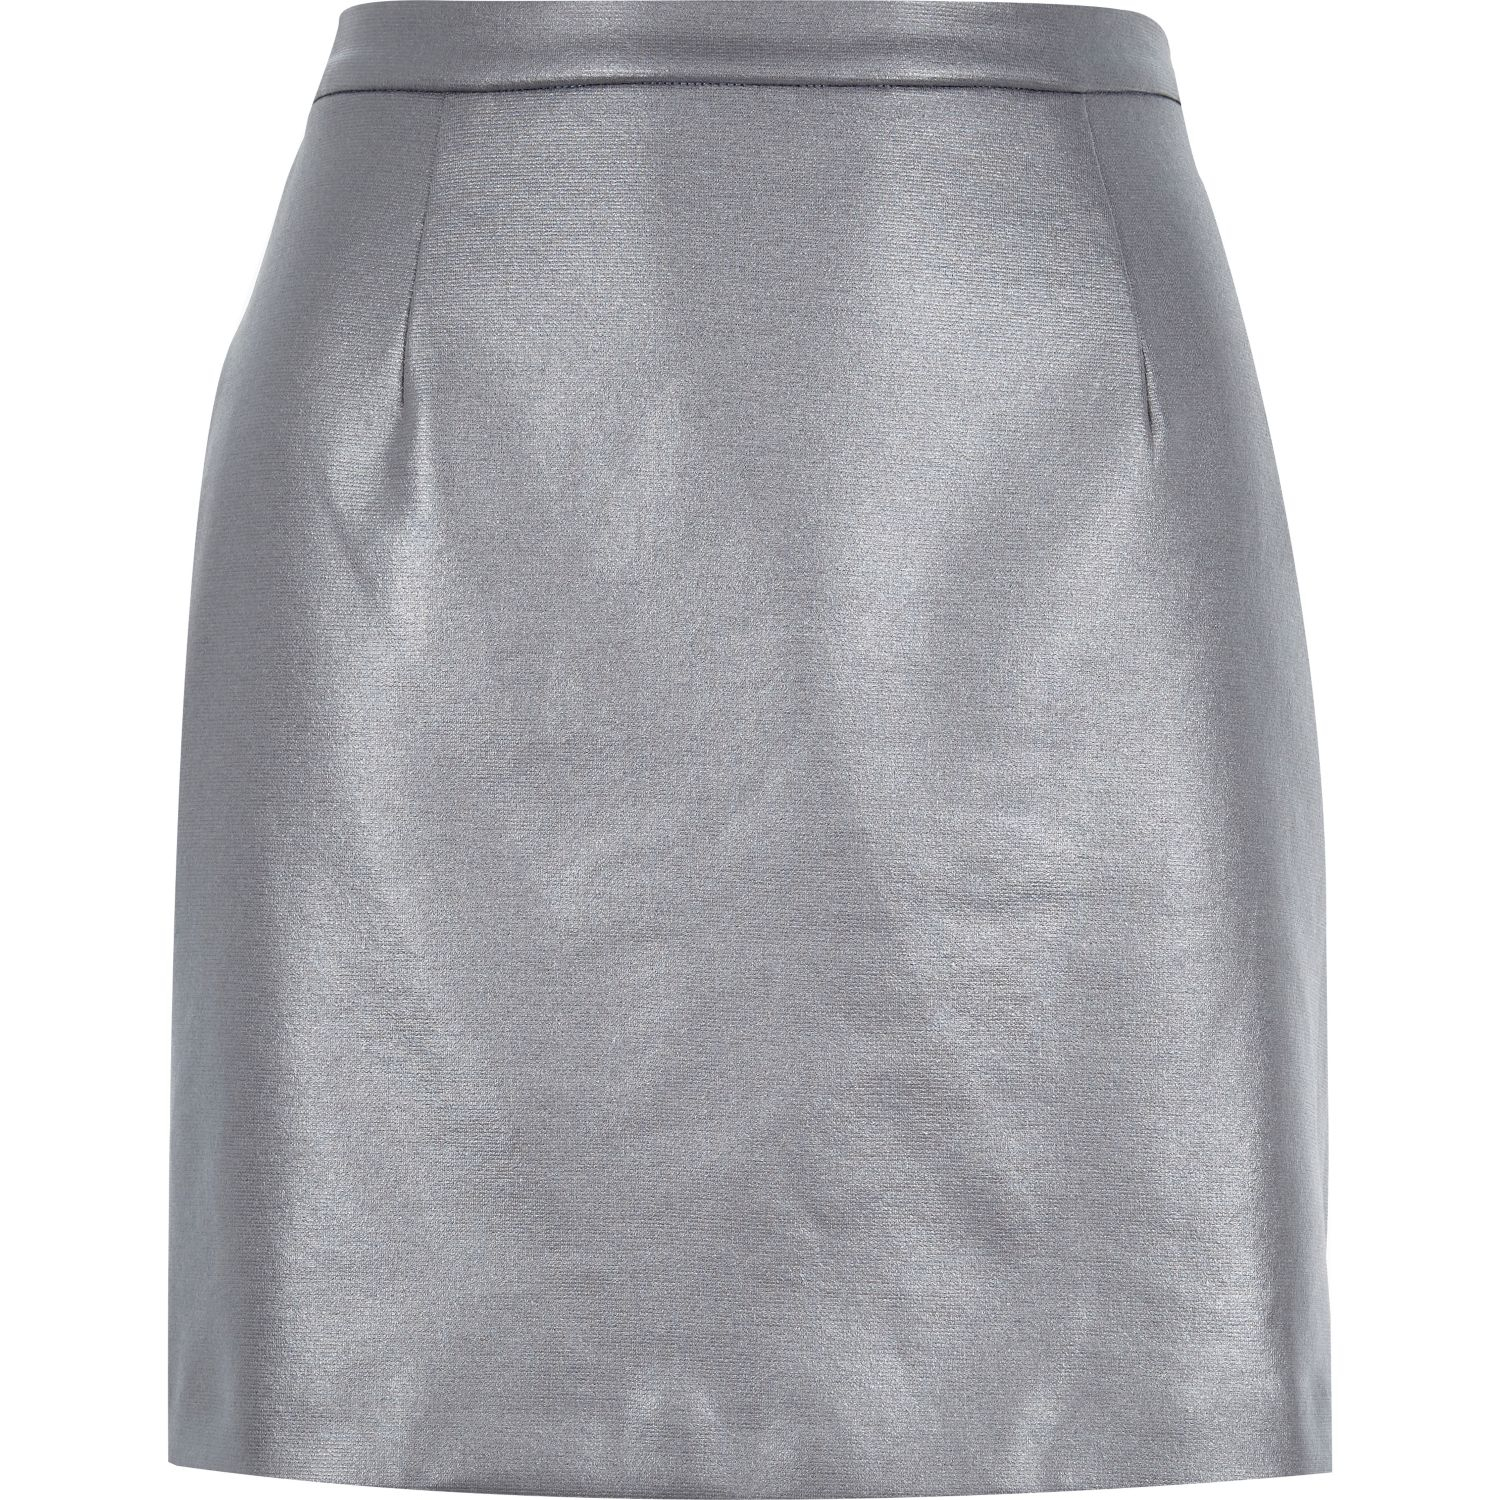 river island grey coated a line skirt in gray grey